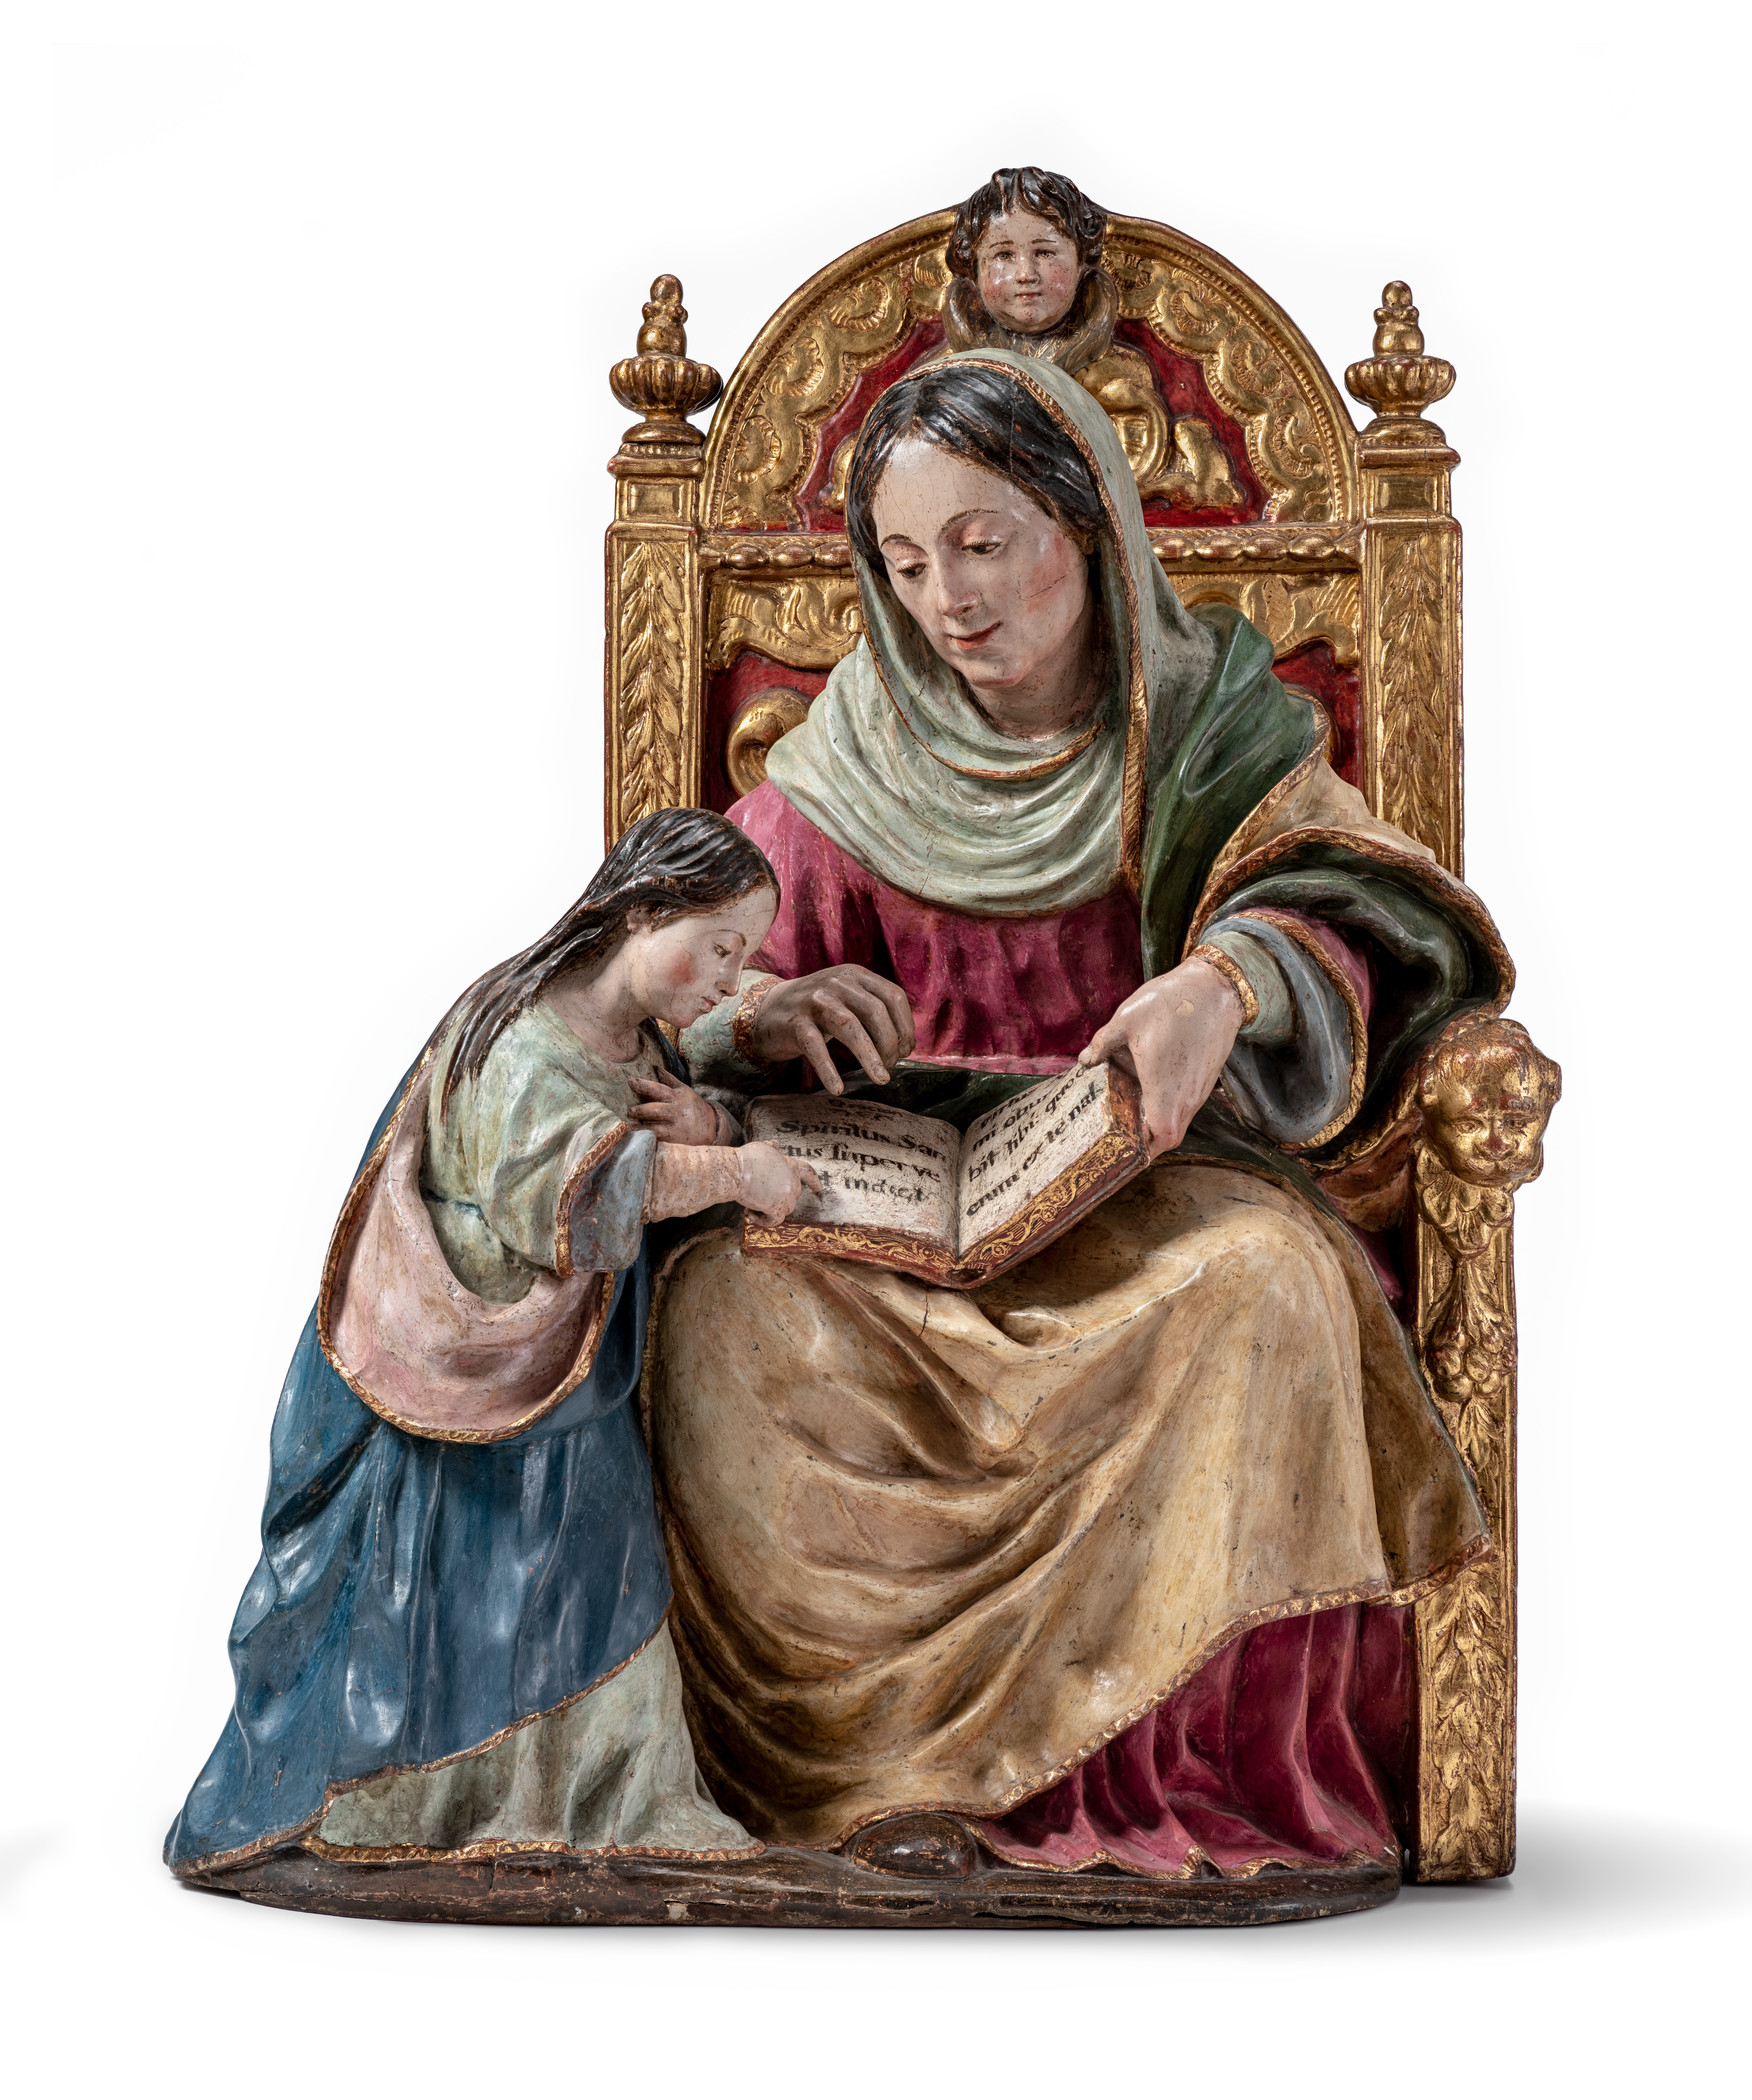 Luisa Roldán, called La Roldana, The Education of the Virgin, early 1680s, gift of the 2019 Collectors Committee with additional funds from Linda Borick and Bill Davidson on behalf of the Louis L. Borick Foundation, photo © Museum Associates/LACMA